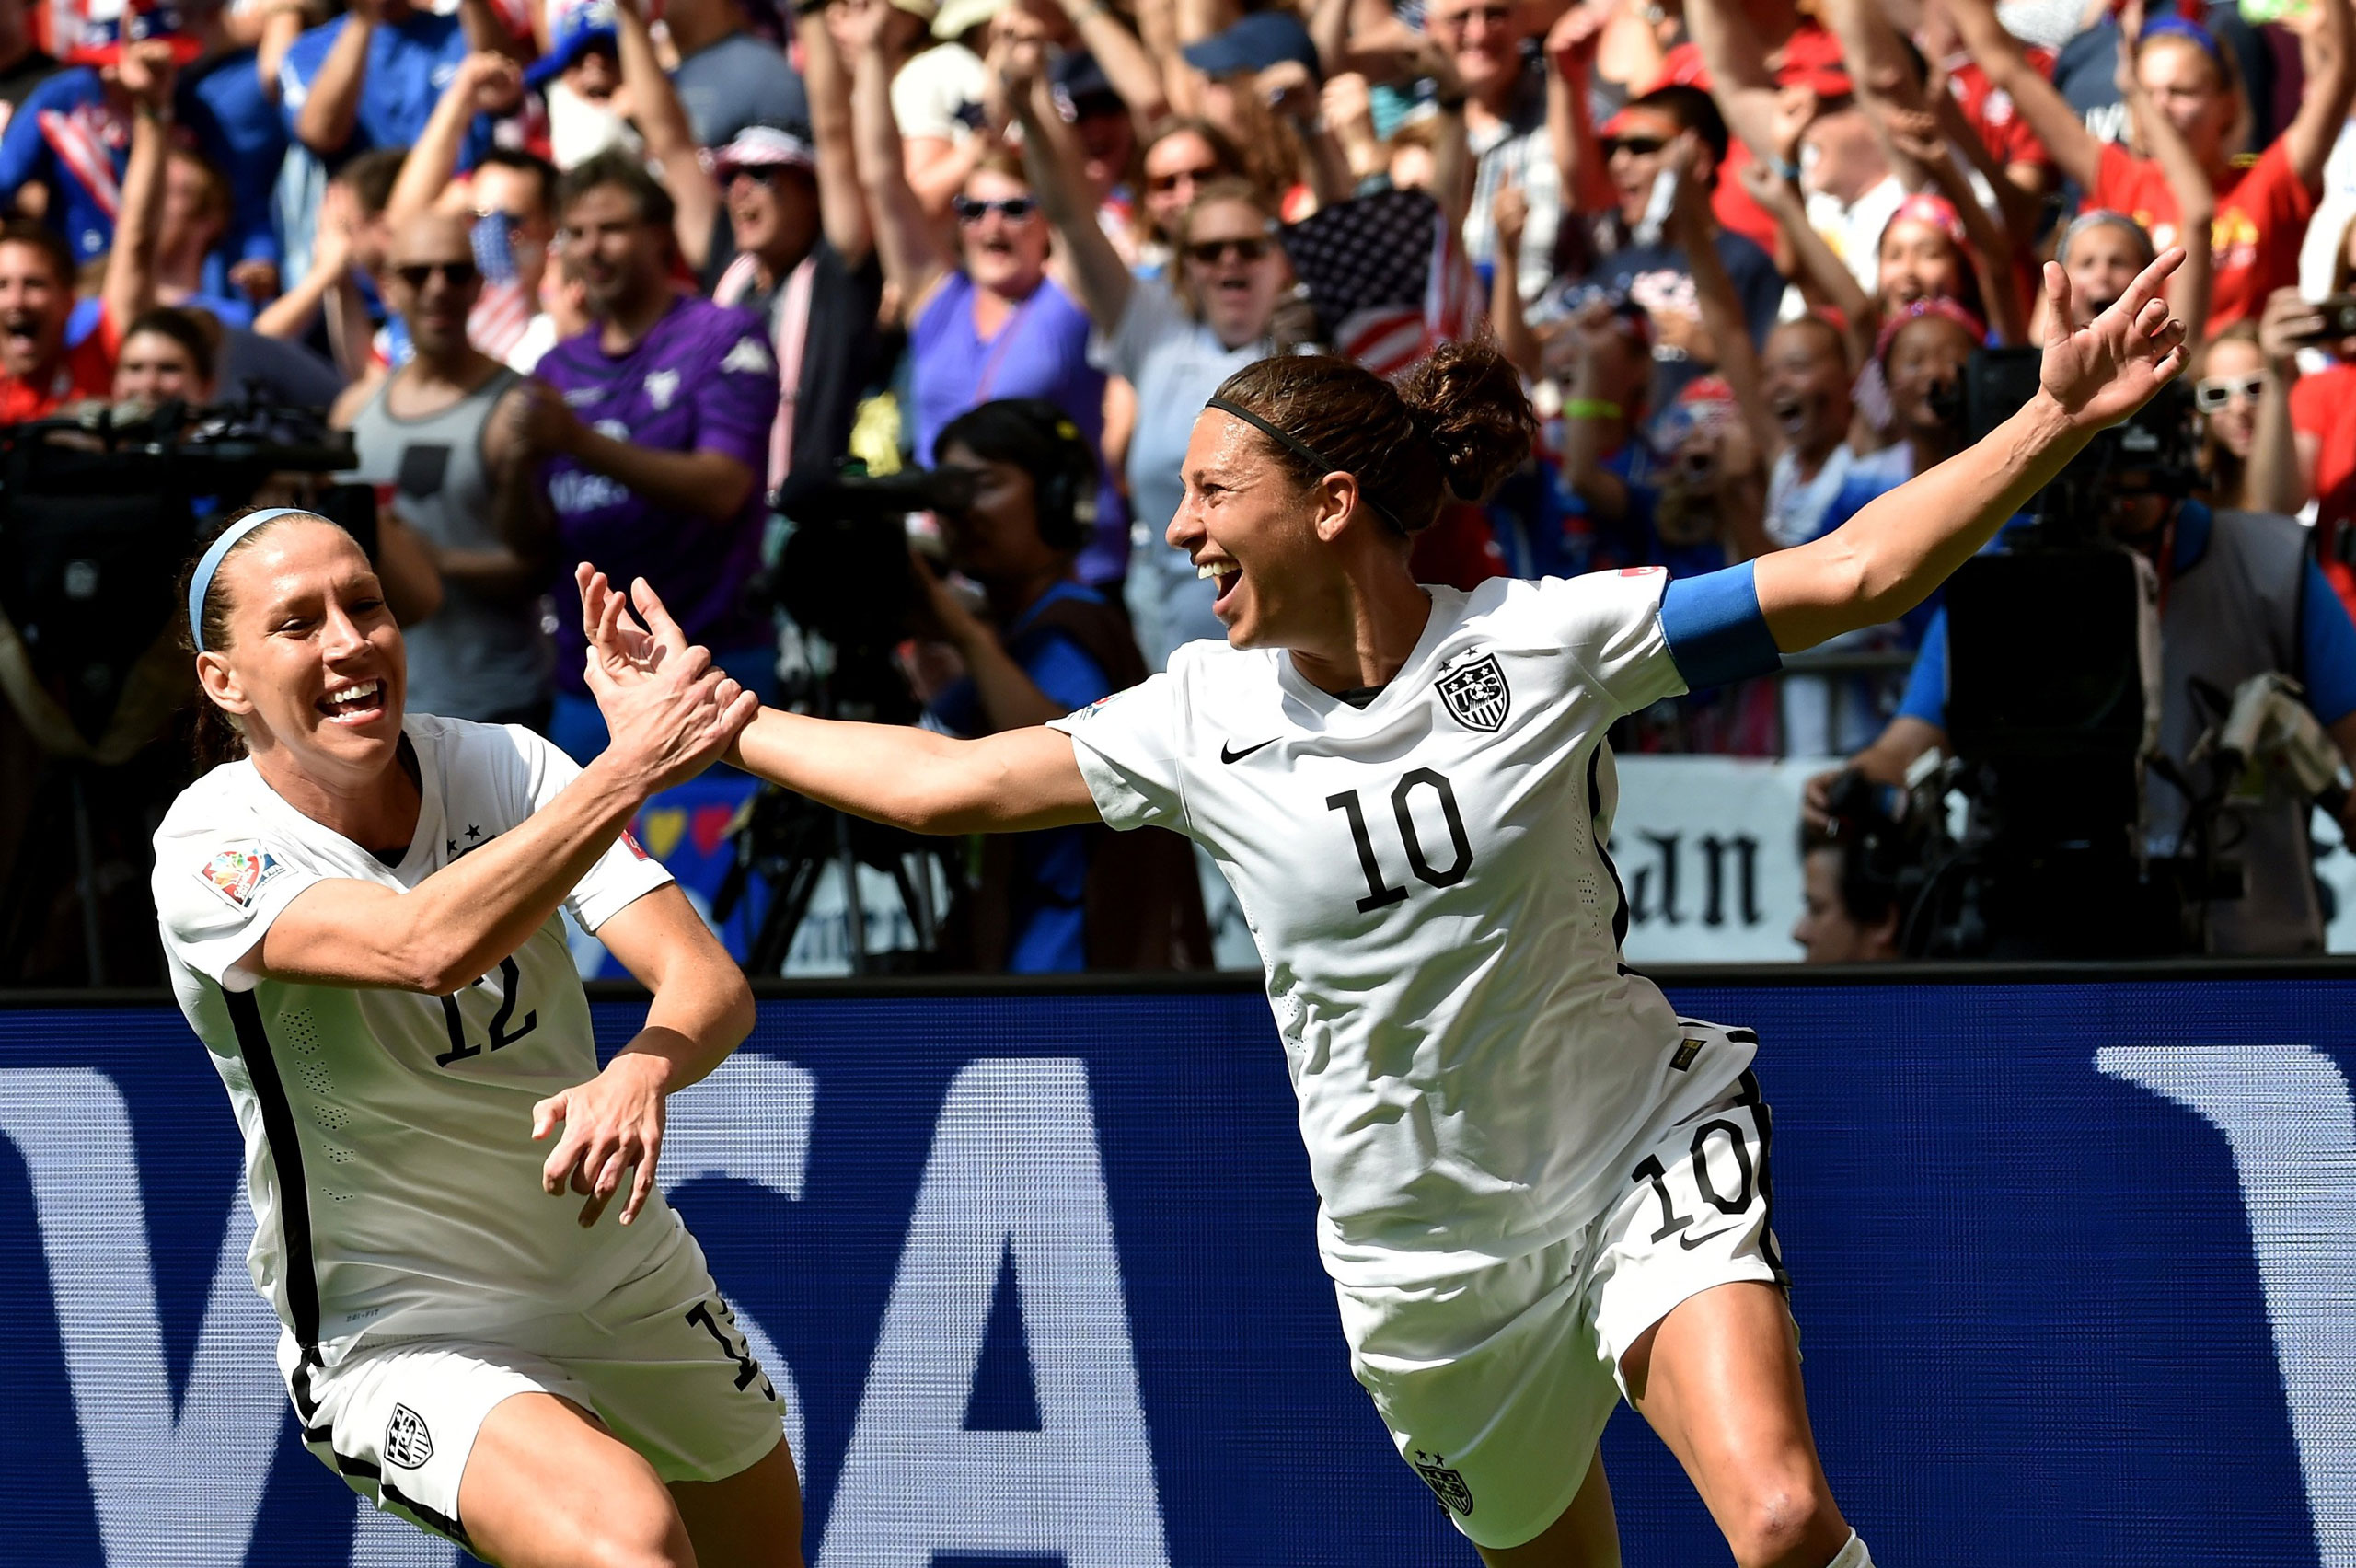 Lauren Holiday and Carli Lloyd celebrate with teammates after Lloyd scores her second goal against Japan in the final match of the 2015 FIFA Women's World Cup at the BC Place Stadium in Vancouver on July 5, 2015.